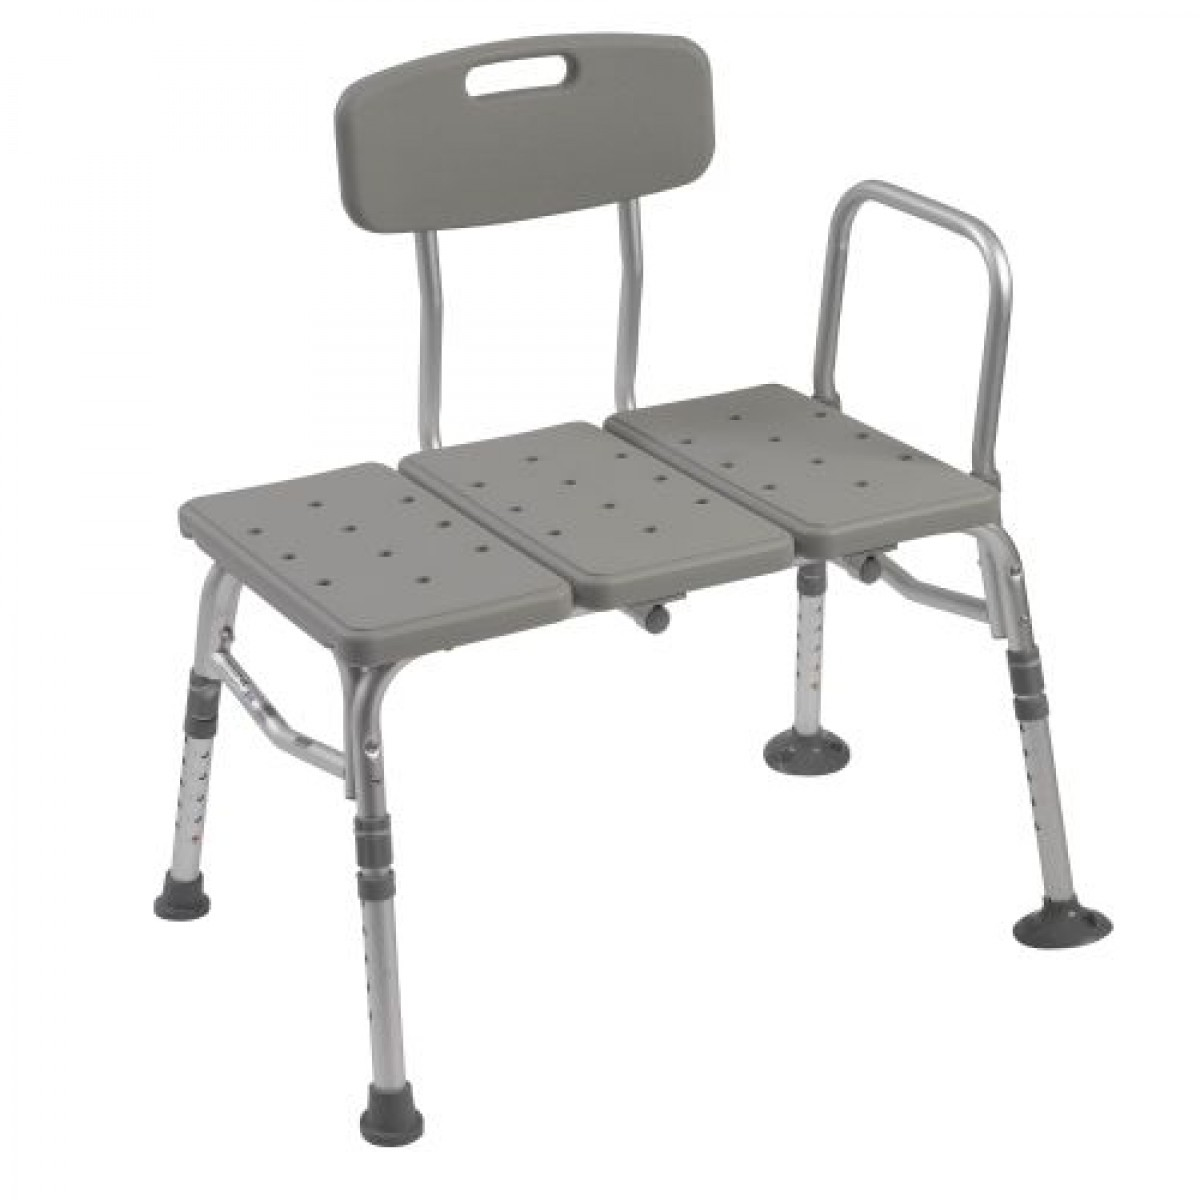 Plastic Transfer Bench With Adjustable Backrest By Drive